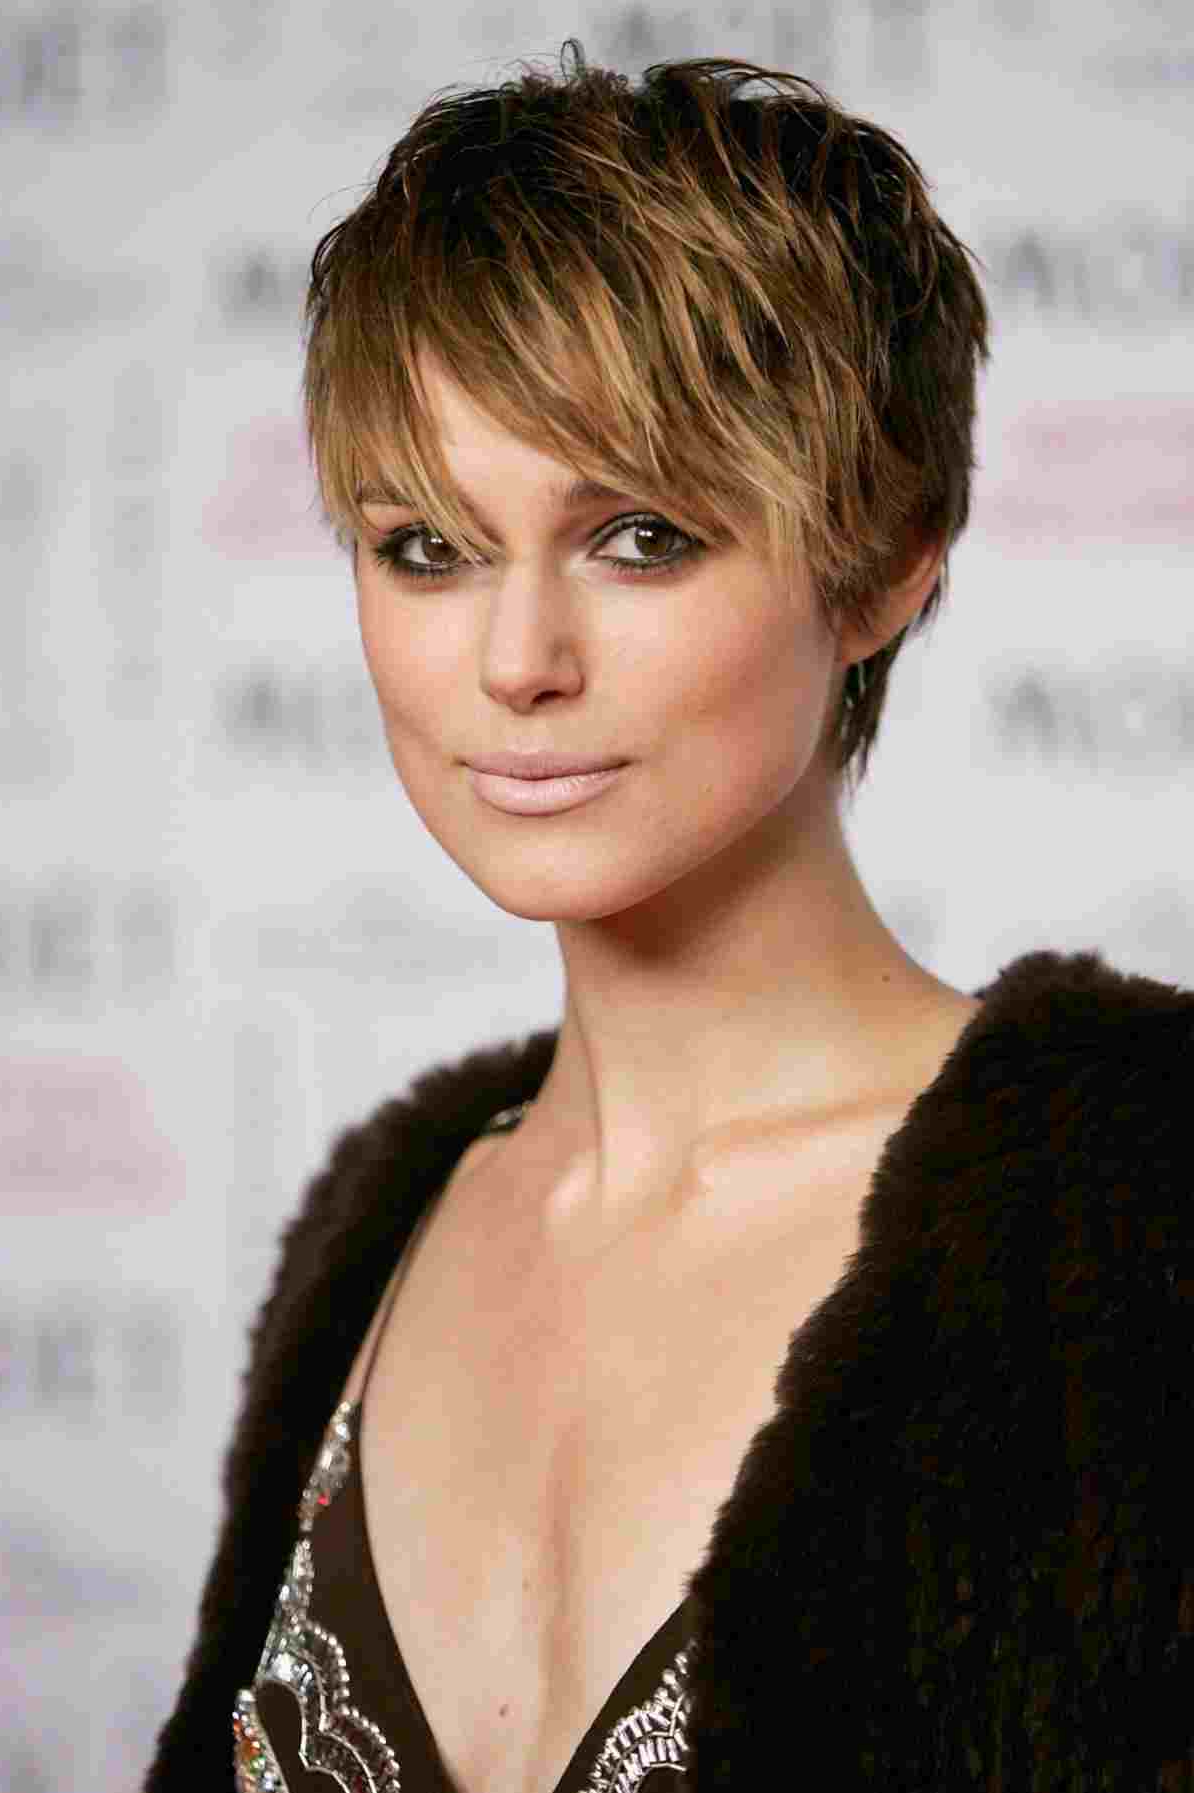 And Square Face S Over Style Women U Manrhexsecratuscom Awesome Regarding Short Hairstyles For A Square Face (View 23 of 25)